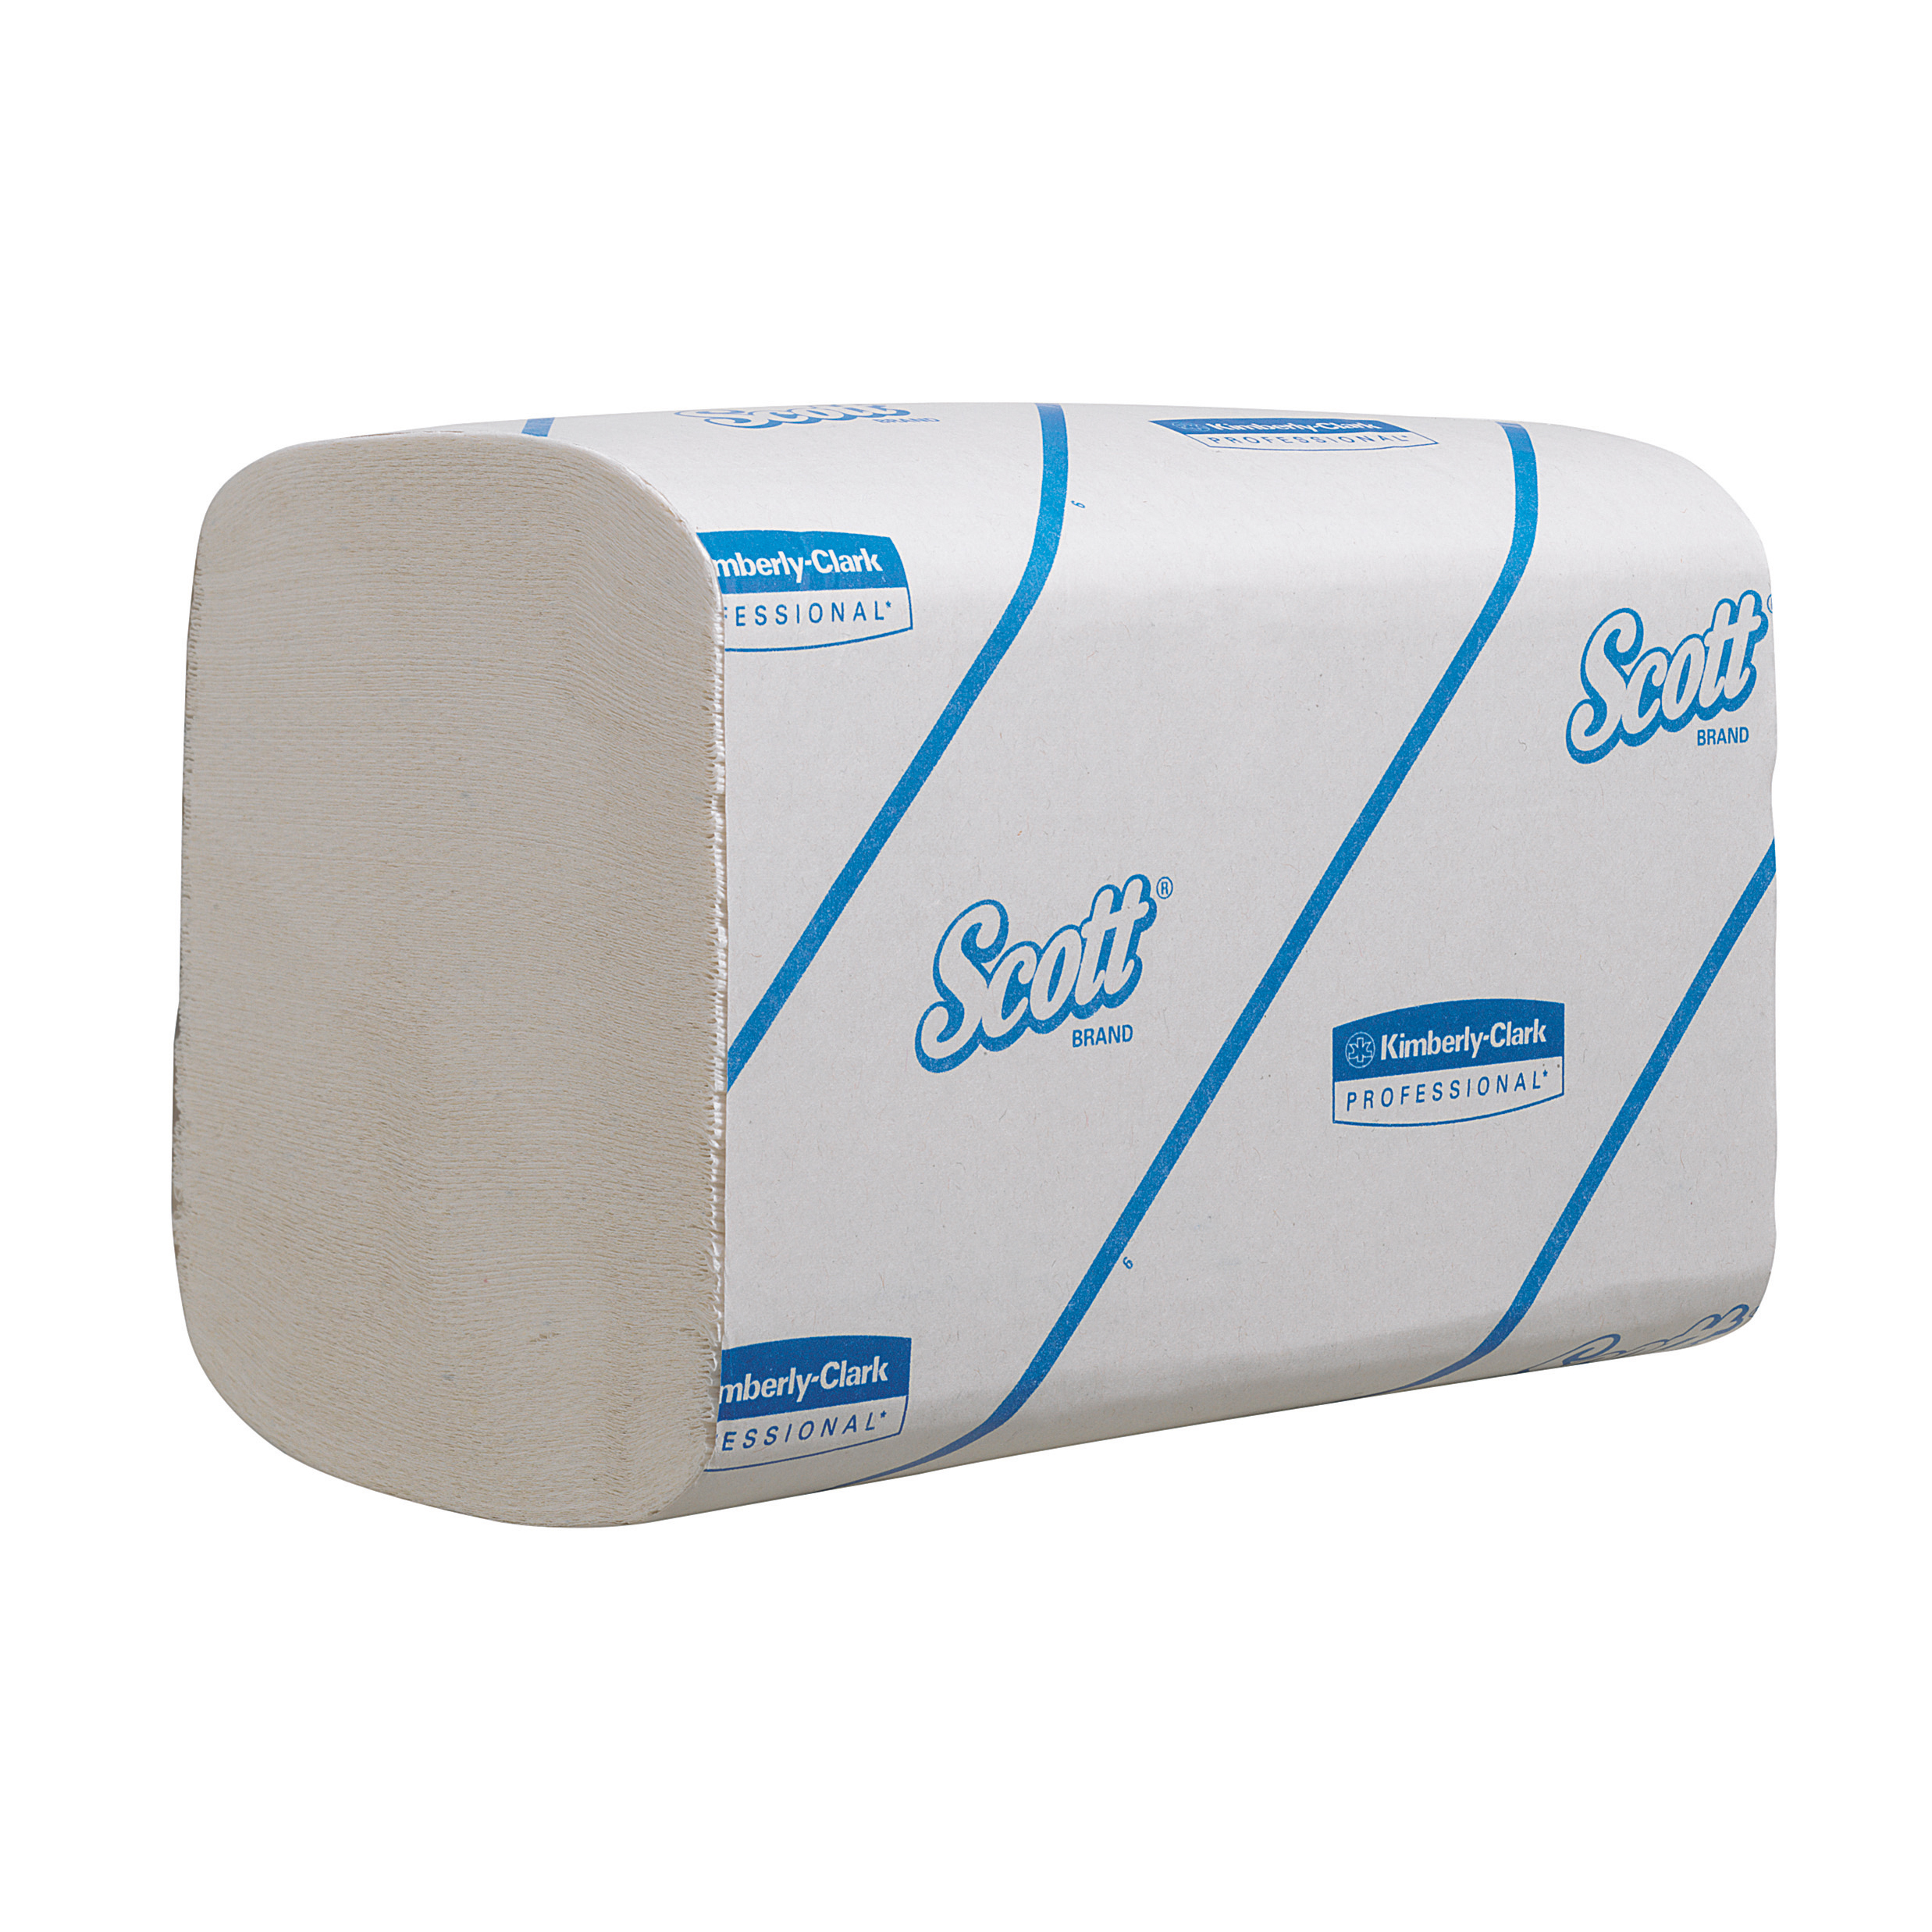 Scott Xtra Hand Towels White 1 Ply 210x200mm 320 Towels per Sleeve White Ref 6677 Pack 15 Sleeves